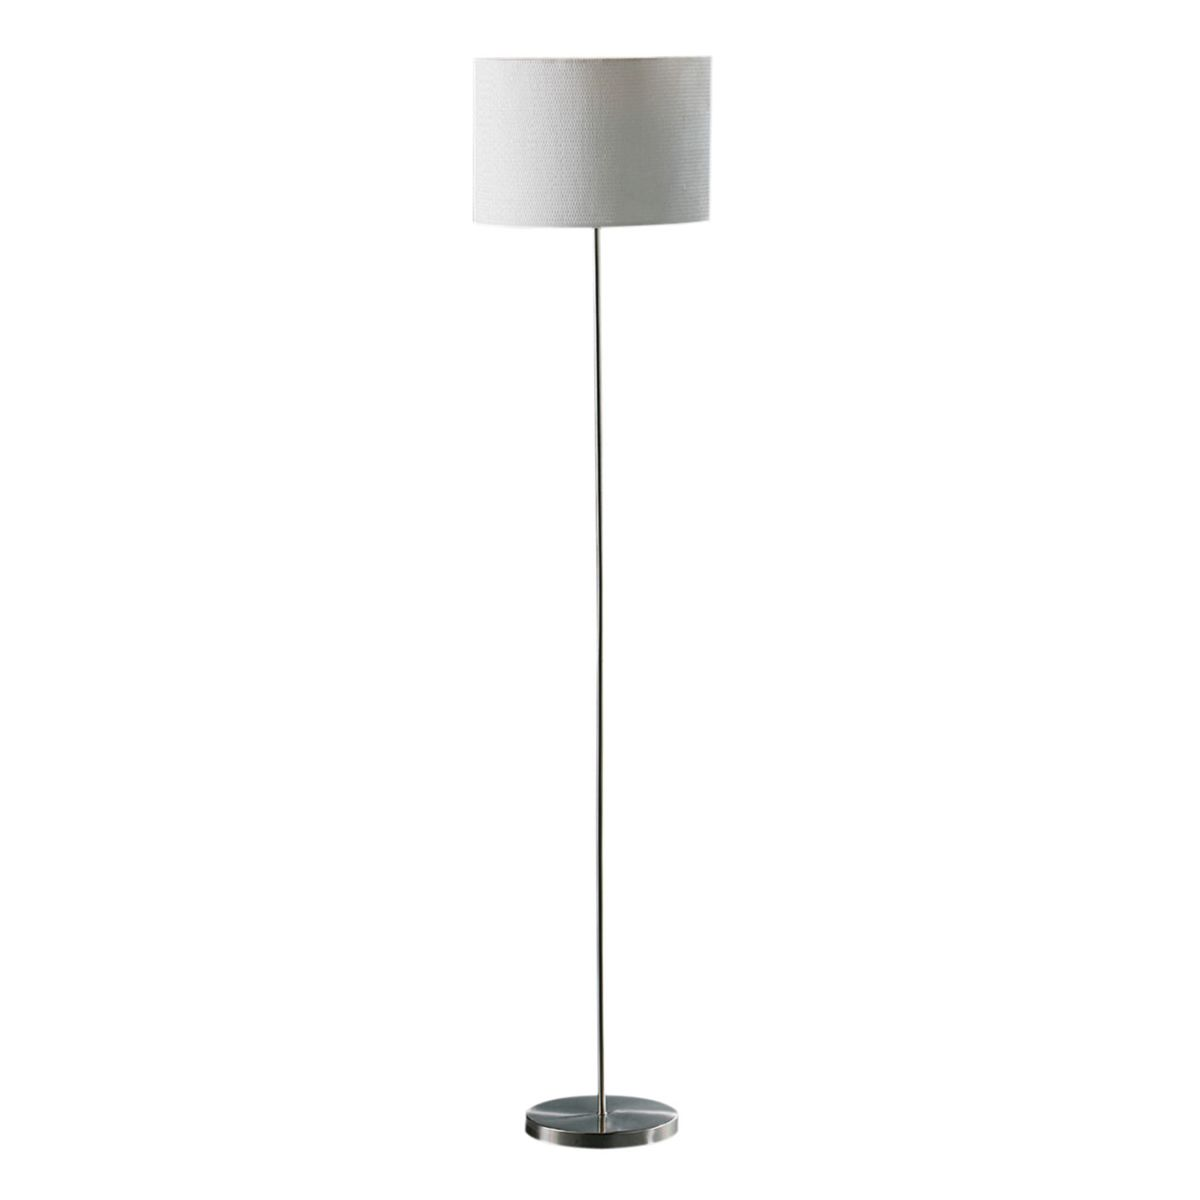 Premier Housewares Forma Chrome Effect Floor Lamp with Cream Waffle Effect Shade